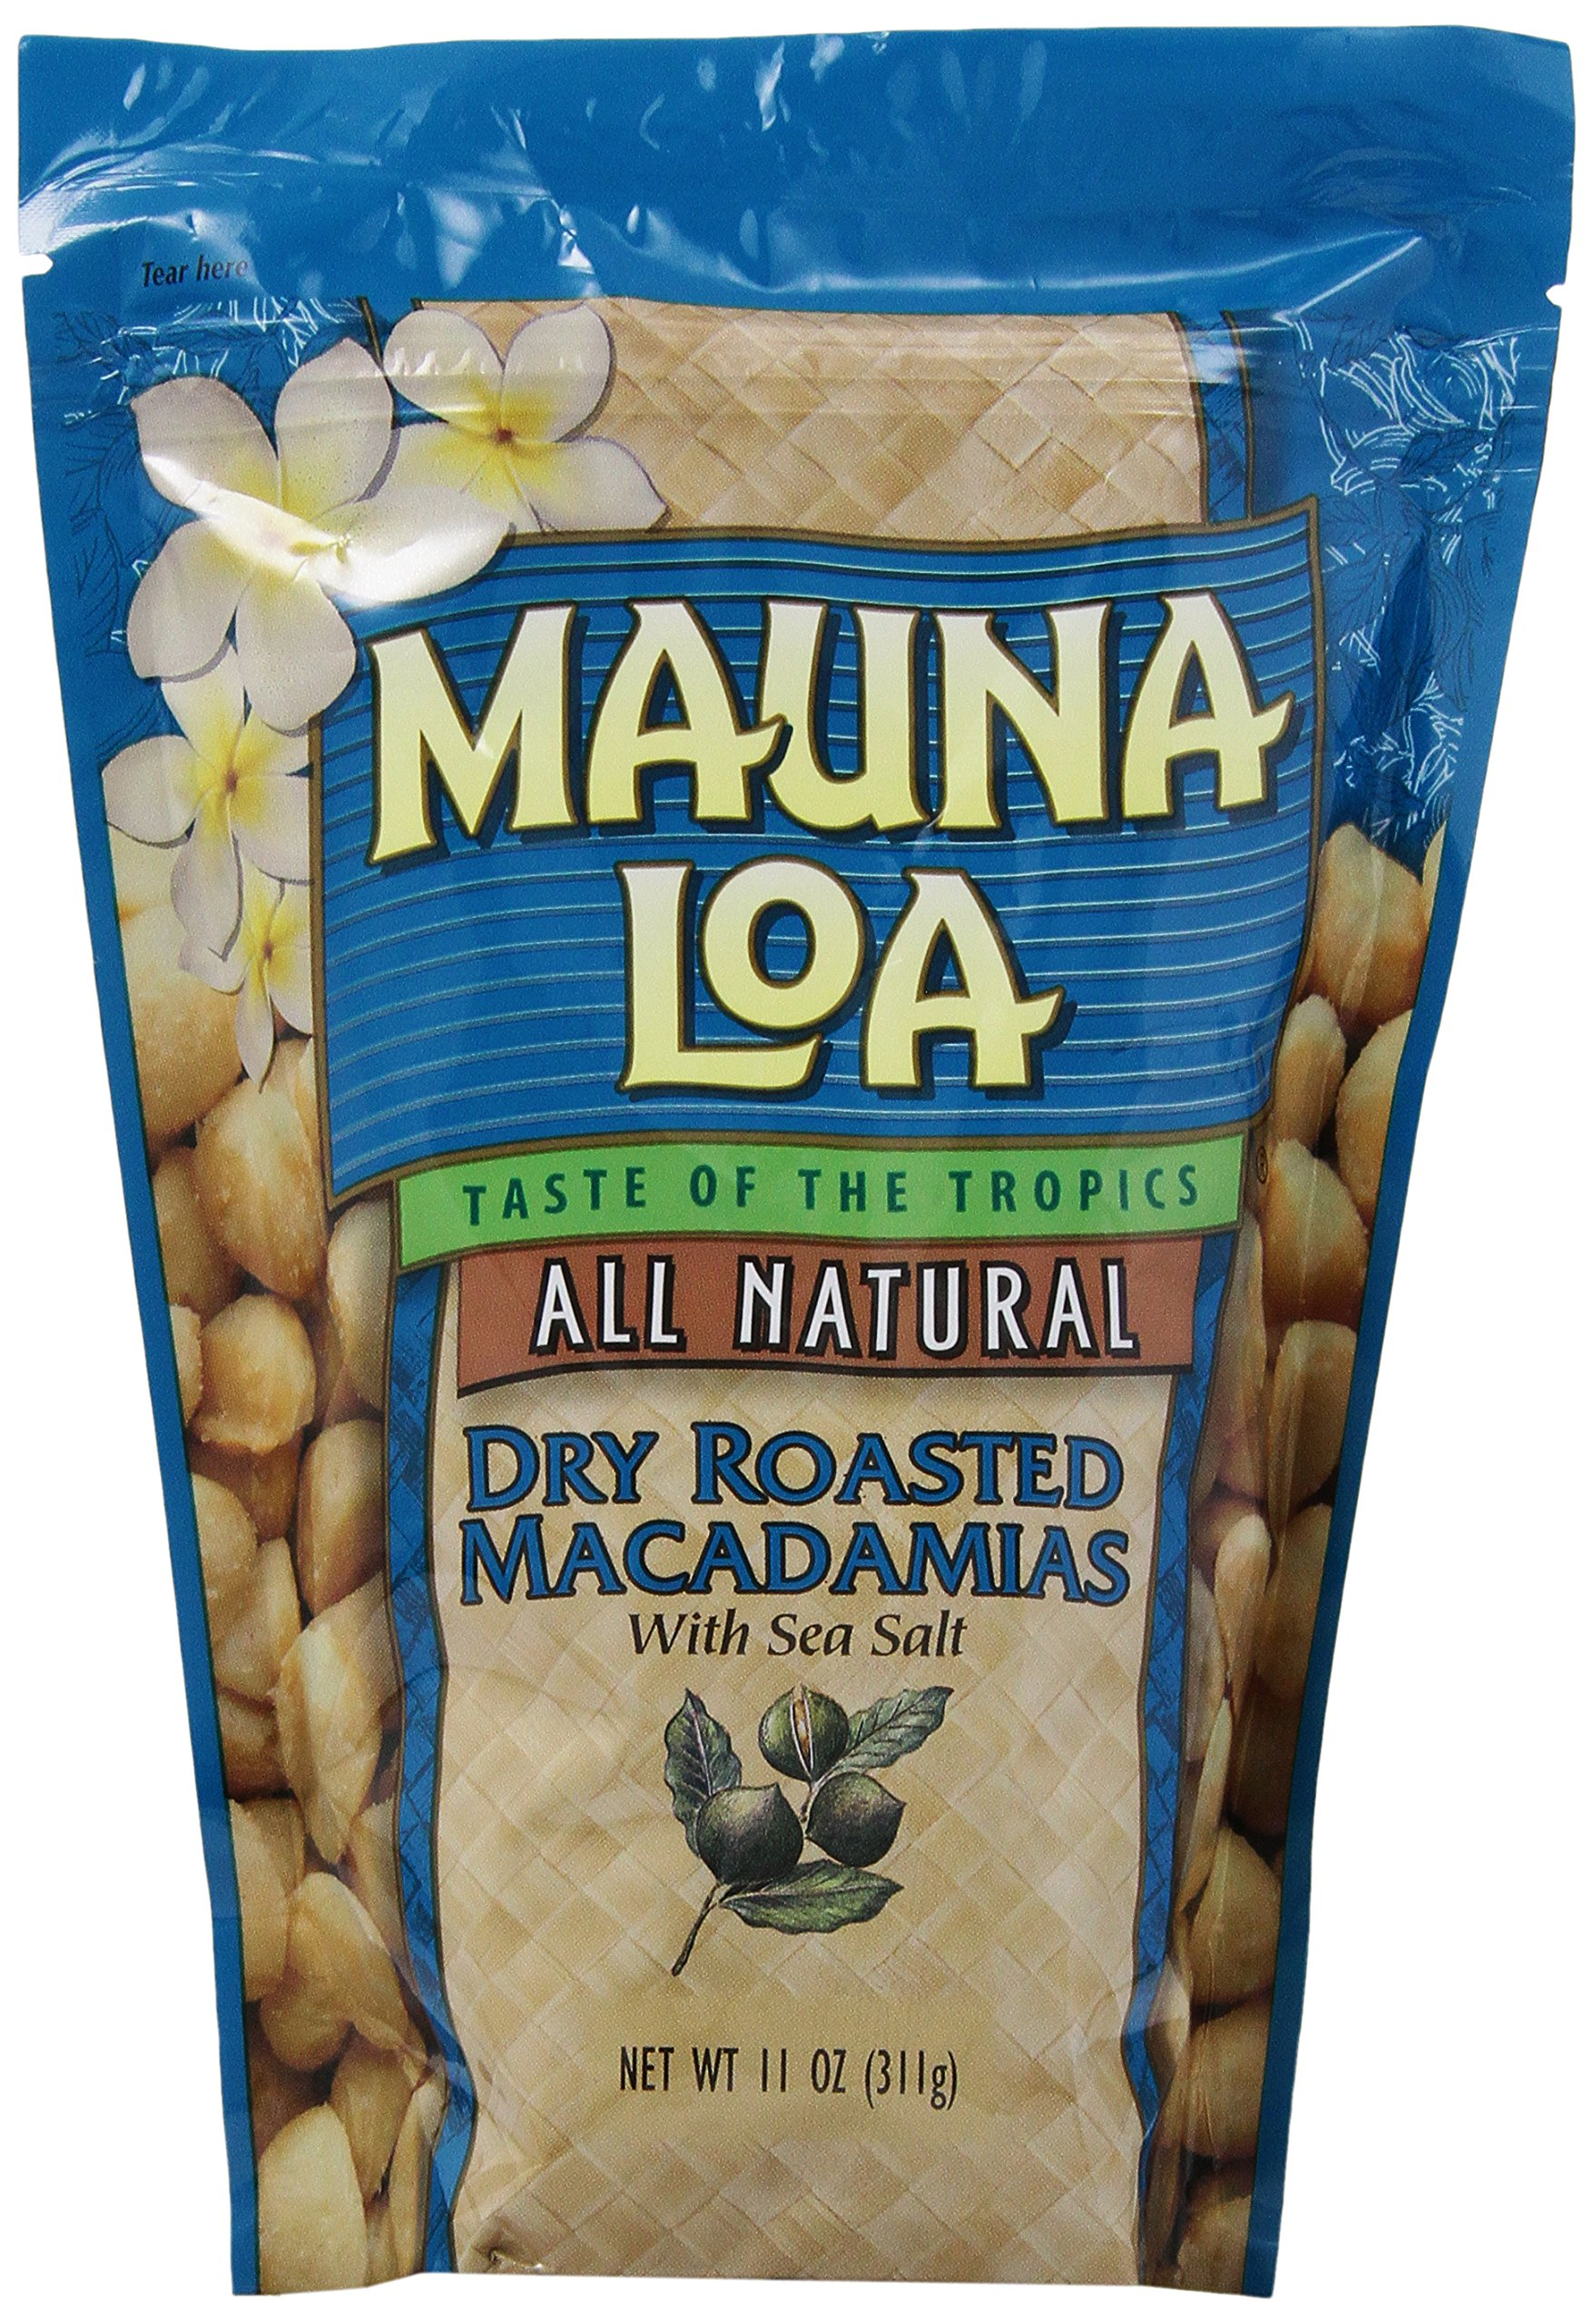 Mauna Loa Macadamias, Dry Roasted with Sea Salt, 11-oz. by Mauna Loa (Image #1)